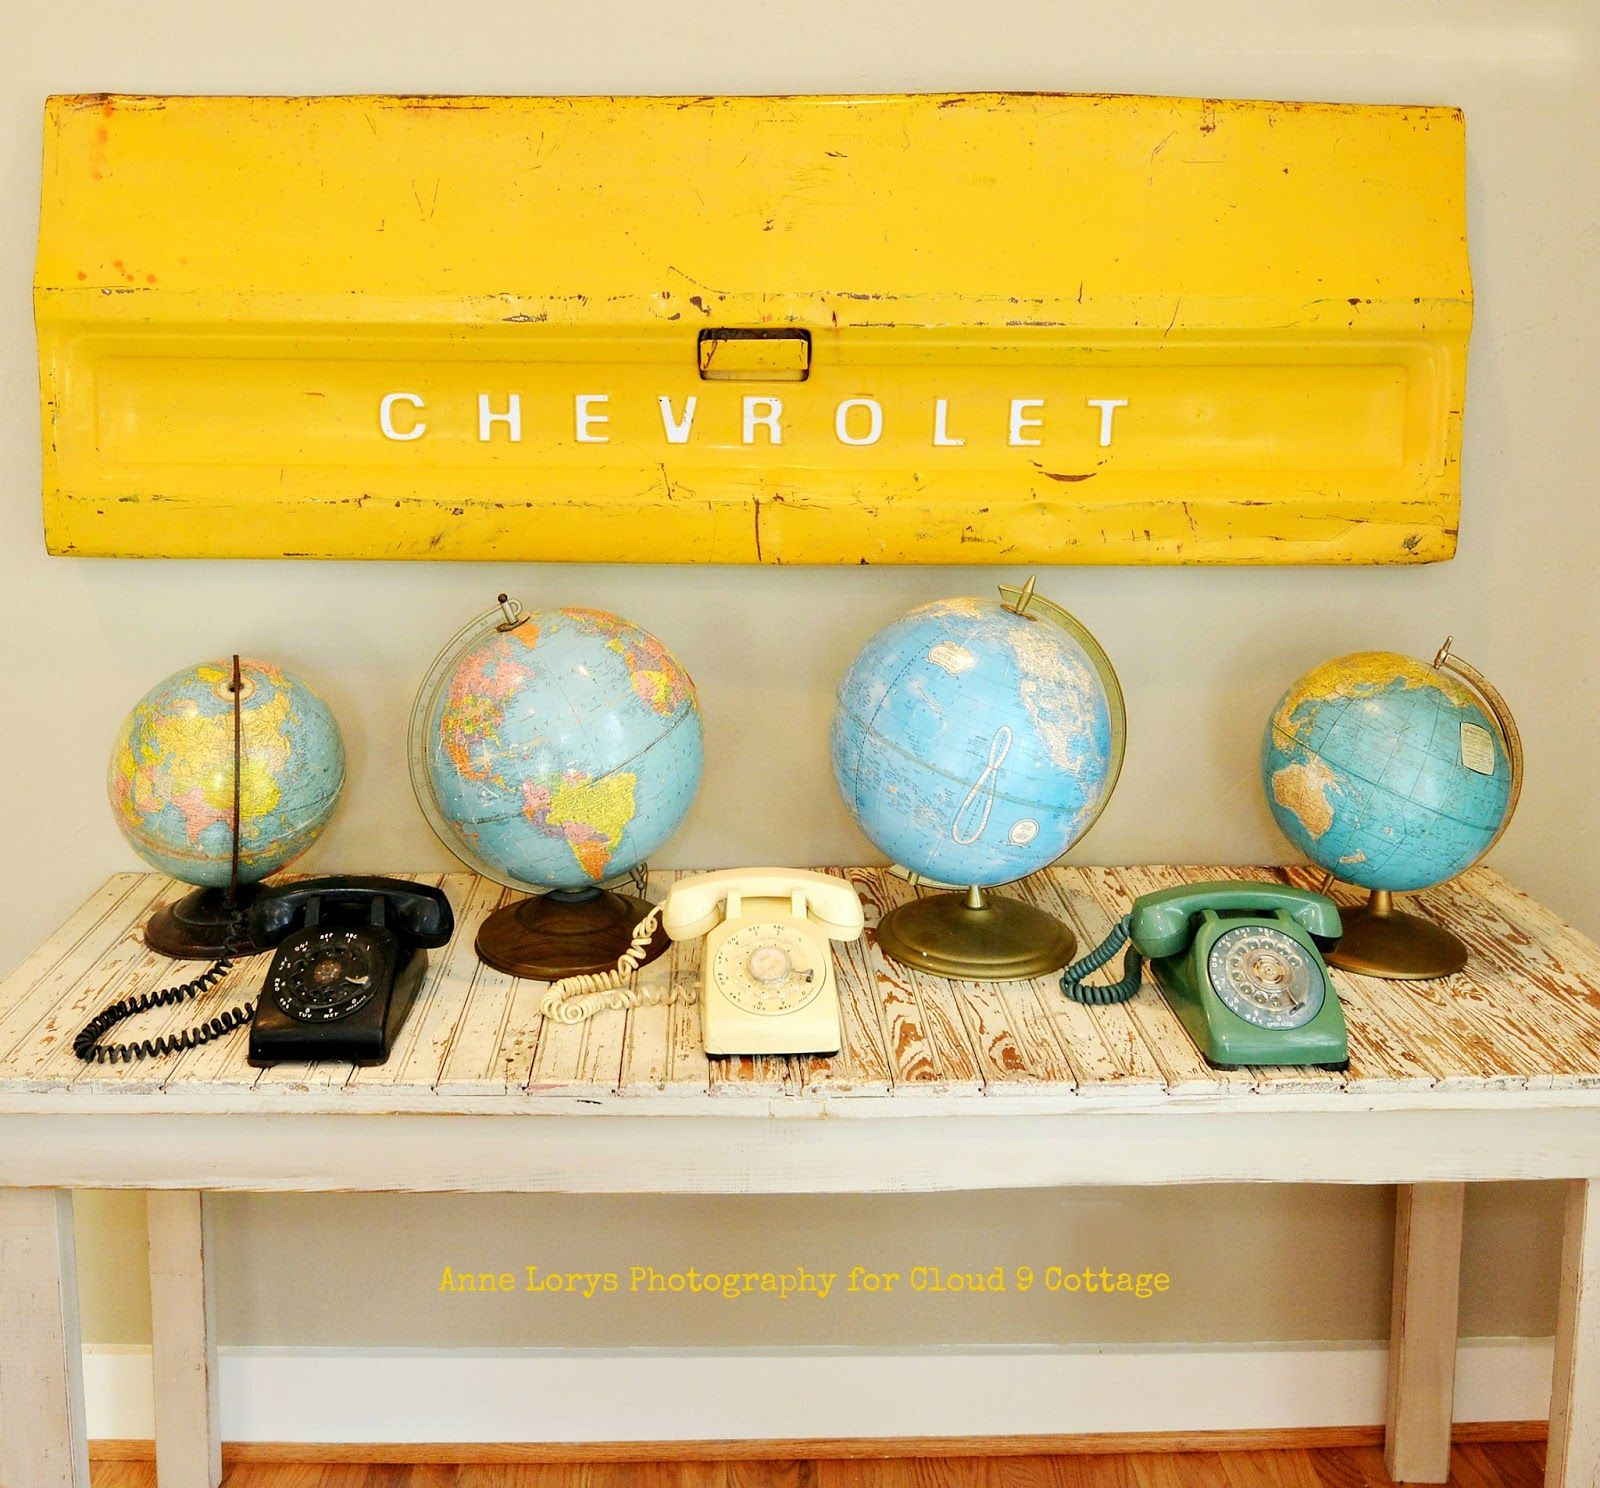 Upcycled Wall Decor - retro sign, rotary phones & globes - vignette ...